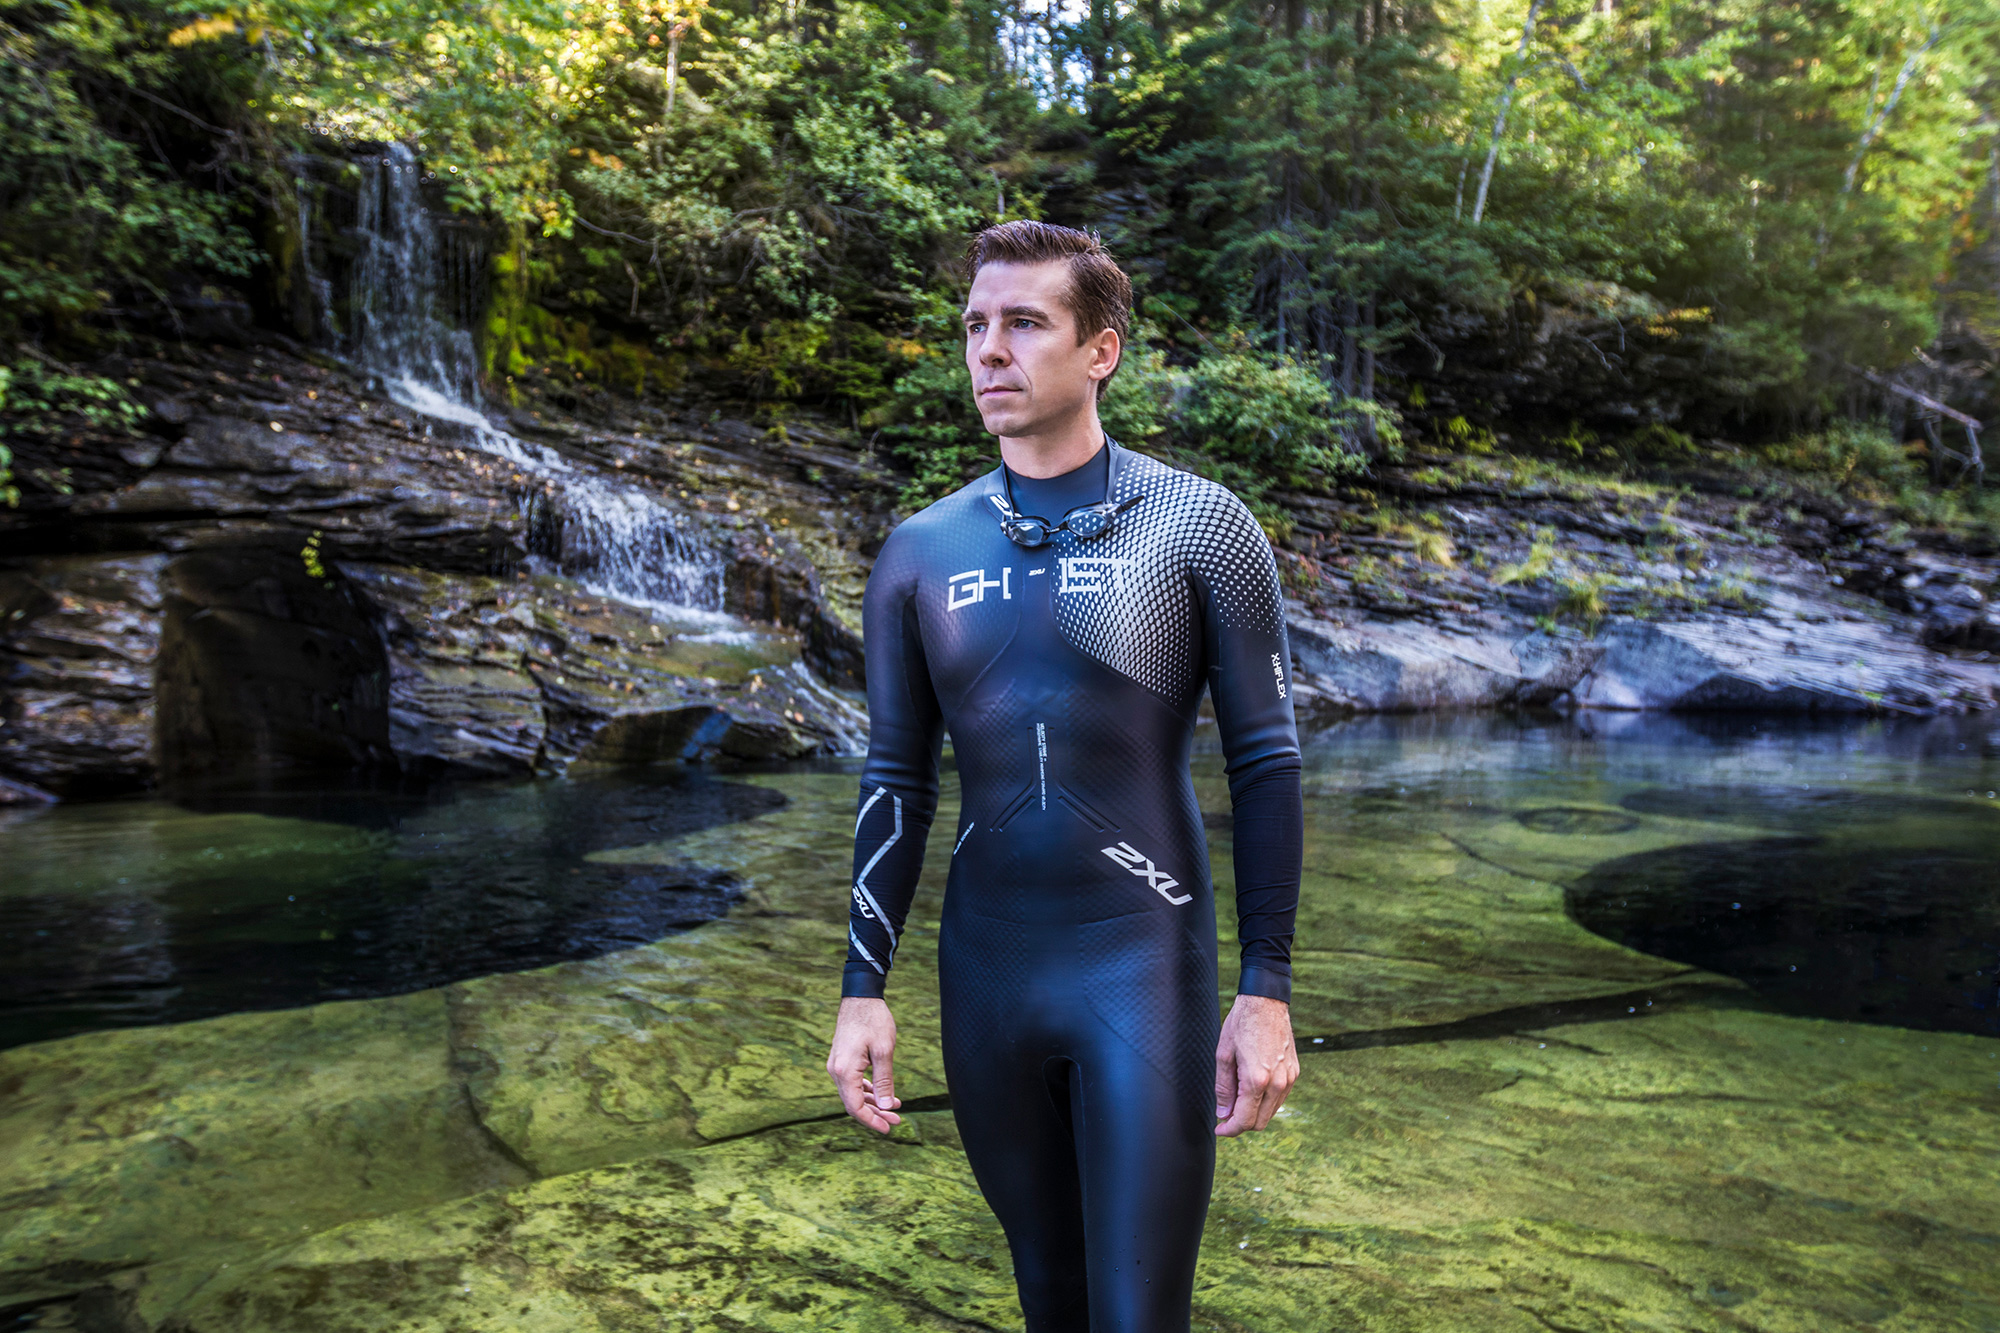 Wetsuit GHST de 2XU / Human performance multiplied